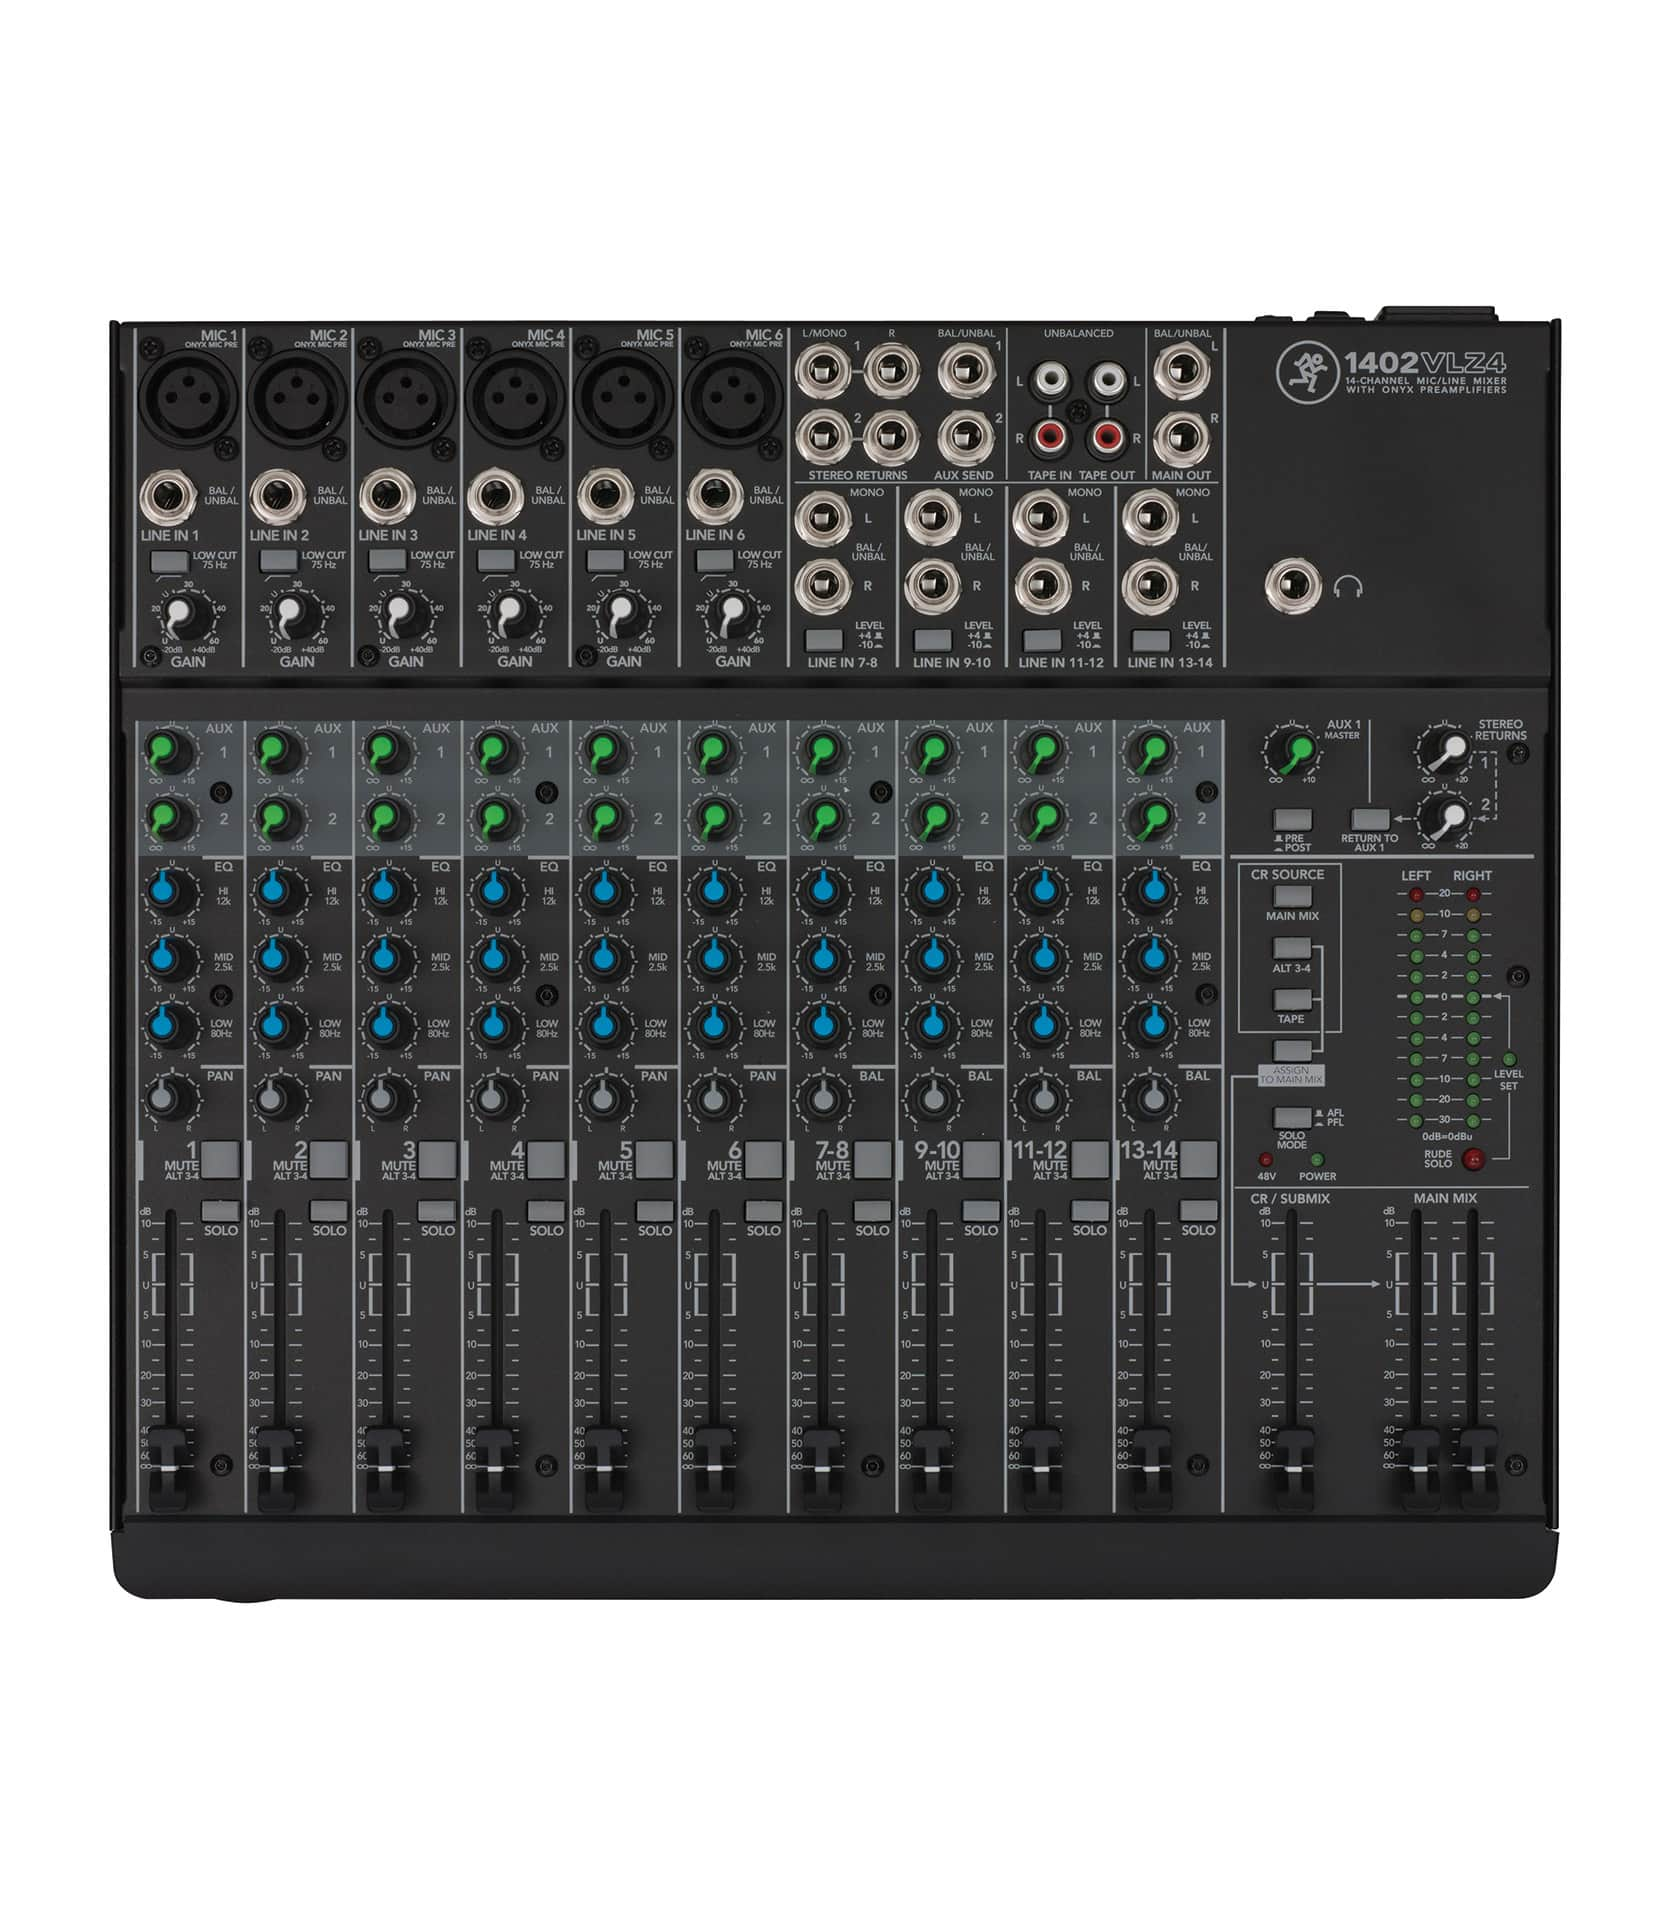 1402VLZ4 14 channel Compact Mixer